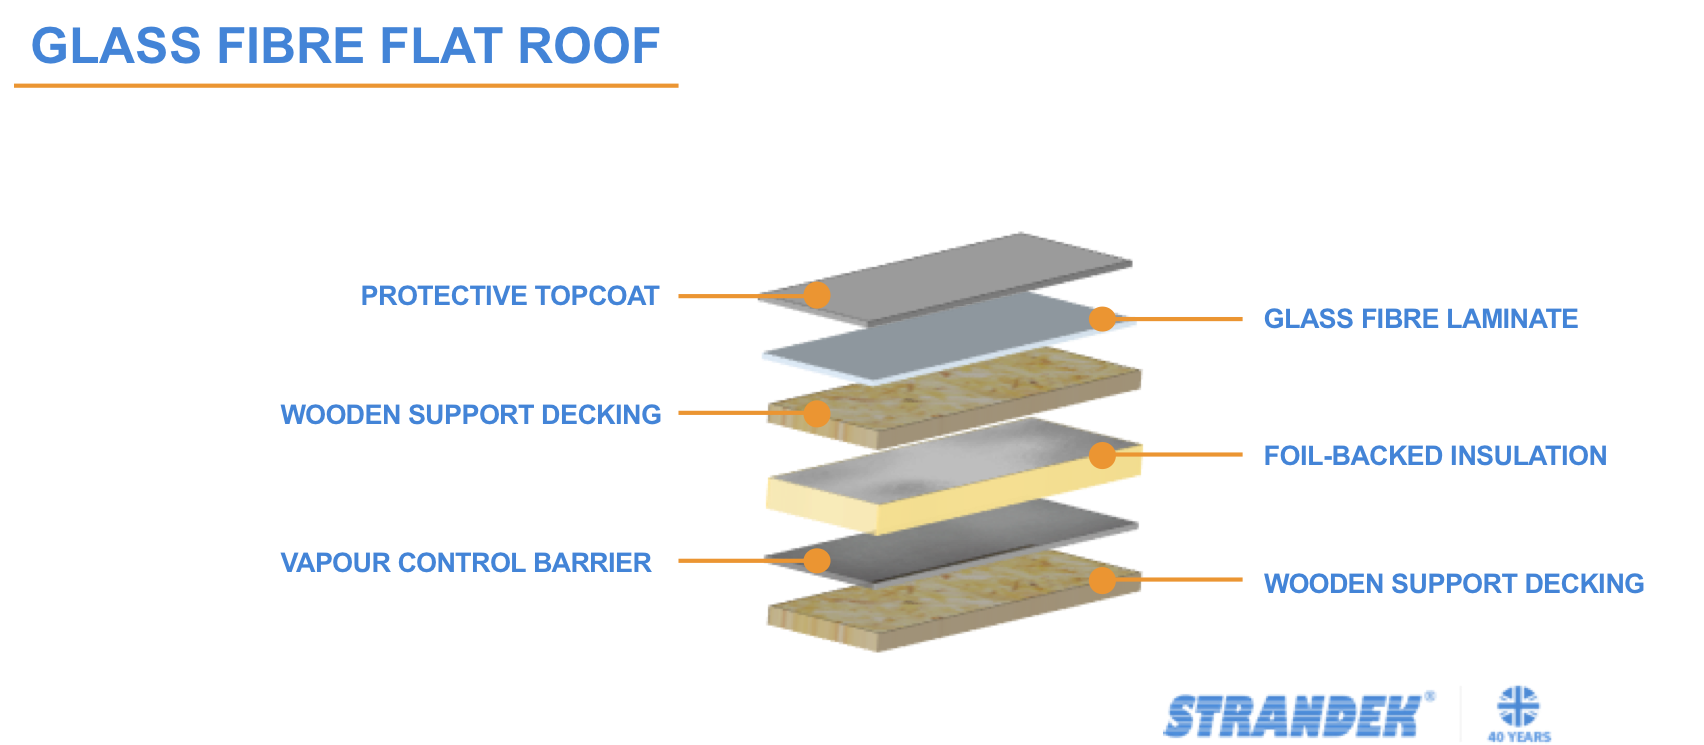 Glass Fibre Roofing Cardiff at Strandek® Flat Roofing